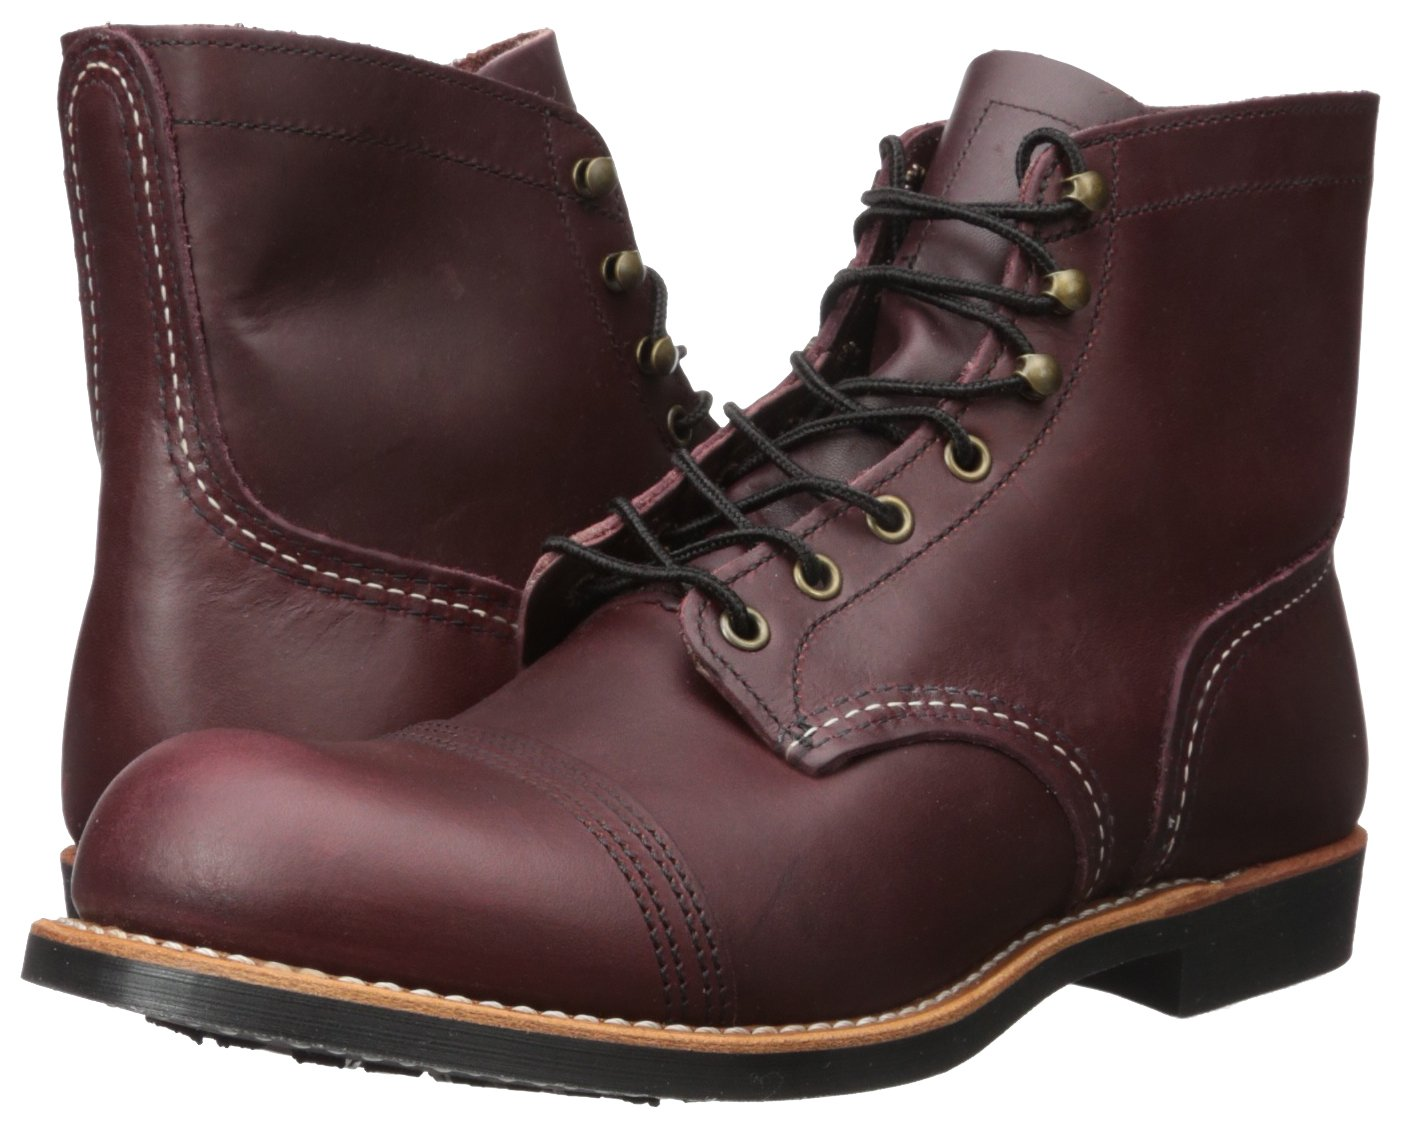 Red Wing Heritage Iron Ranger 6-Inch Boot, Oxblood Mesa, 8.5 D(M) US by Red Wing (Image #6)